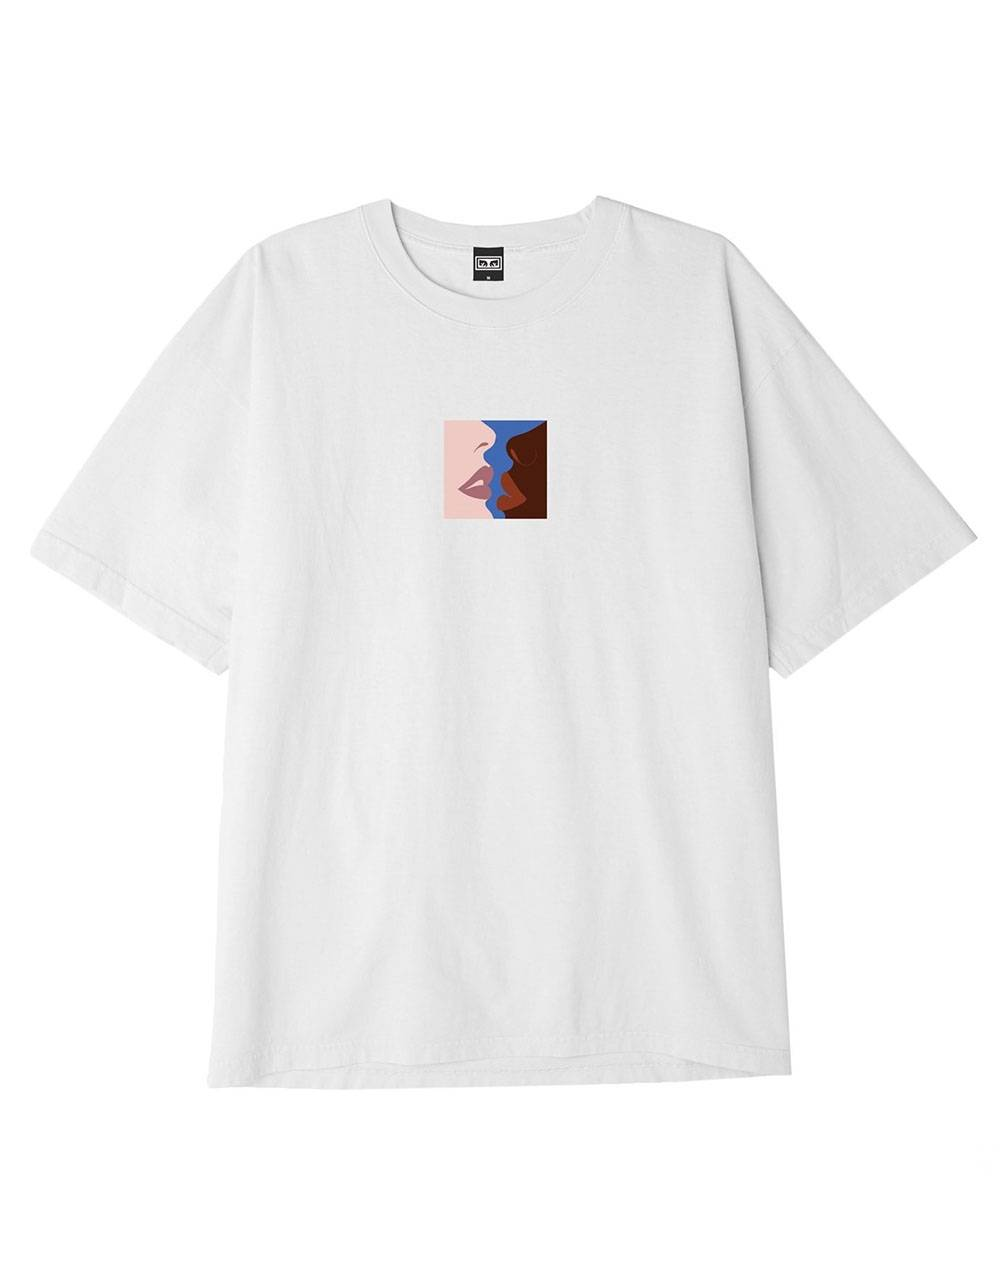 Obey Hers heavyweight box fit t-shirt - white obey T-shirt 50,00€